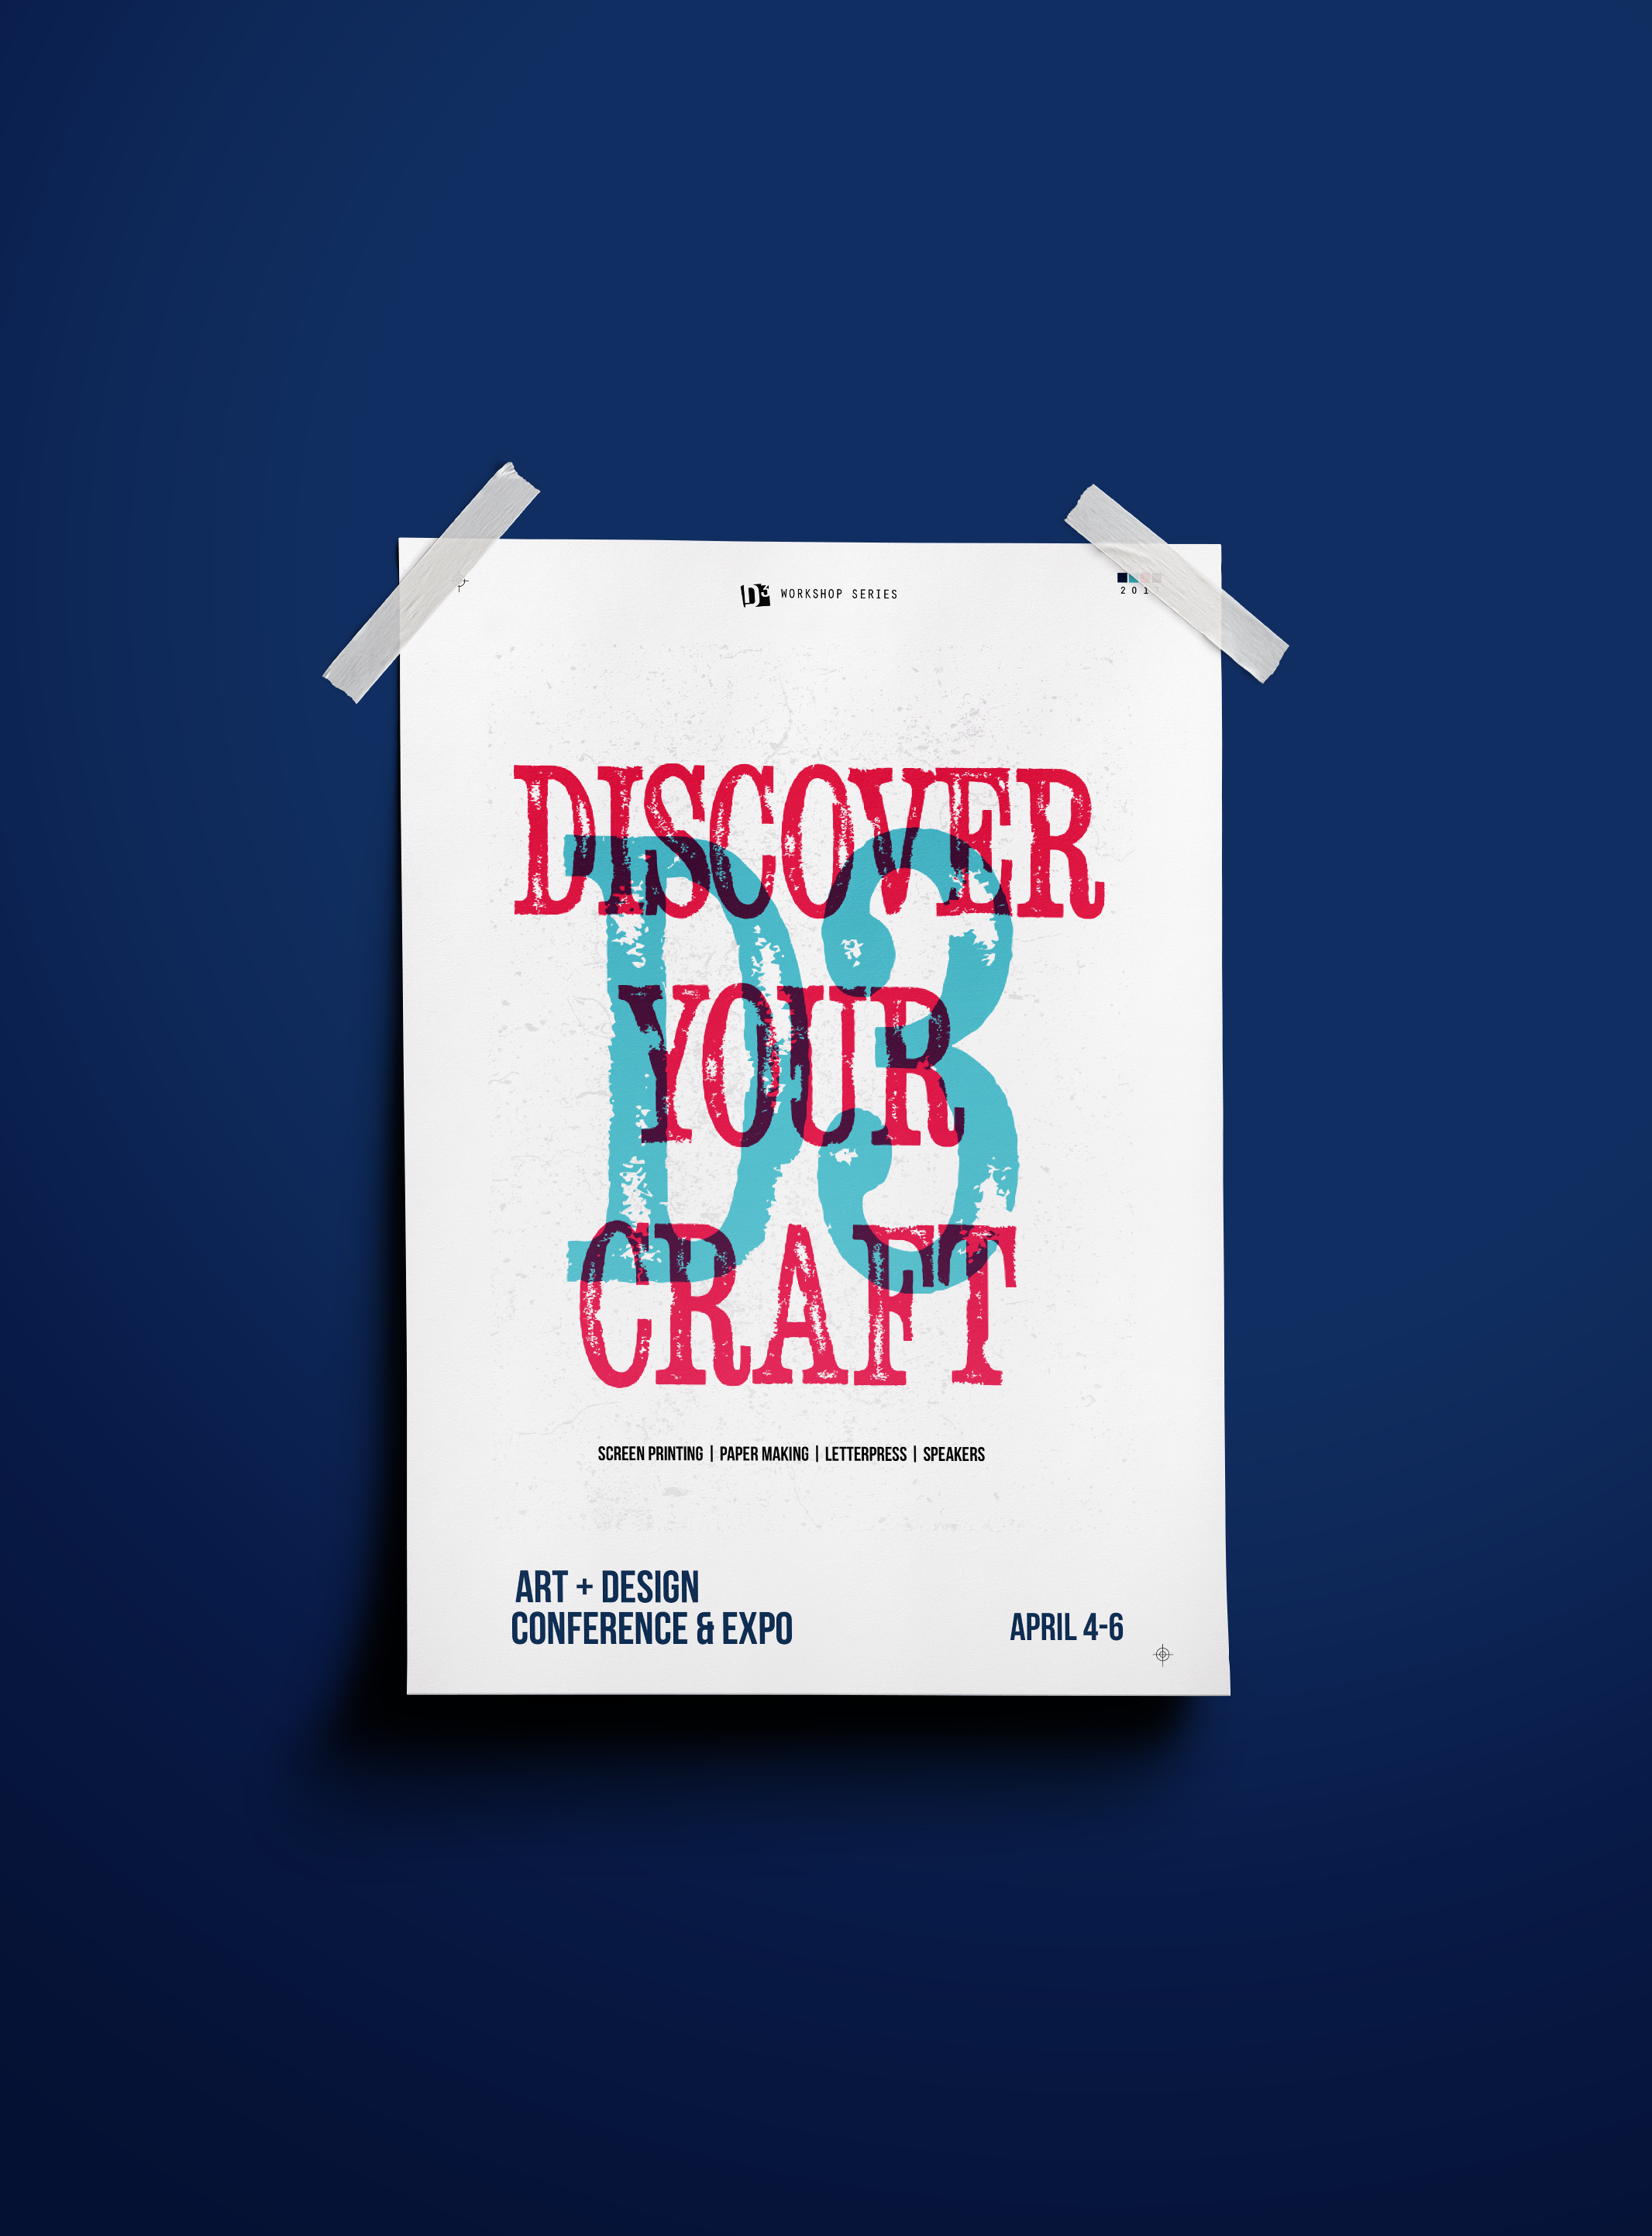 Discover Your Craft Poster Design for D3 Art + Design Conference at Miami-Dade North Campus, 3/4